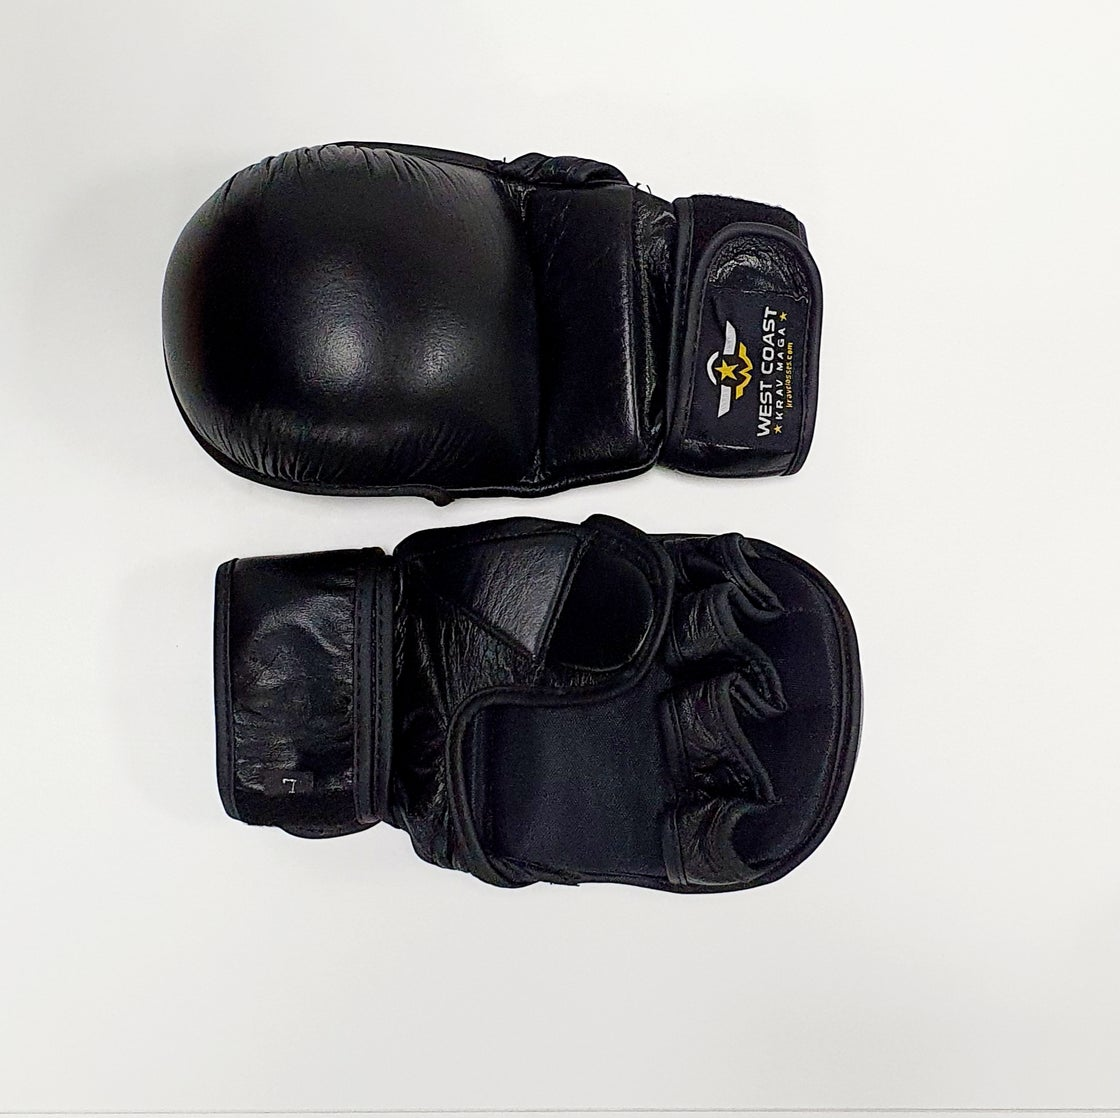 Image of OFFICIAL WEST COAST  GRAPPLING/SPARRING GLOVES